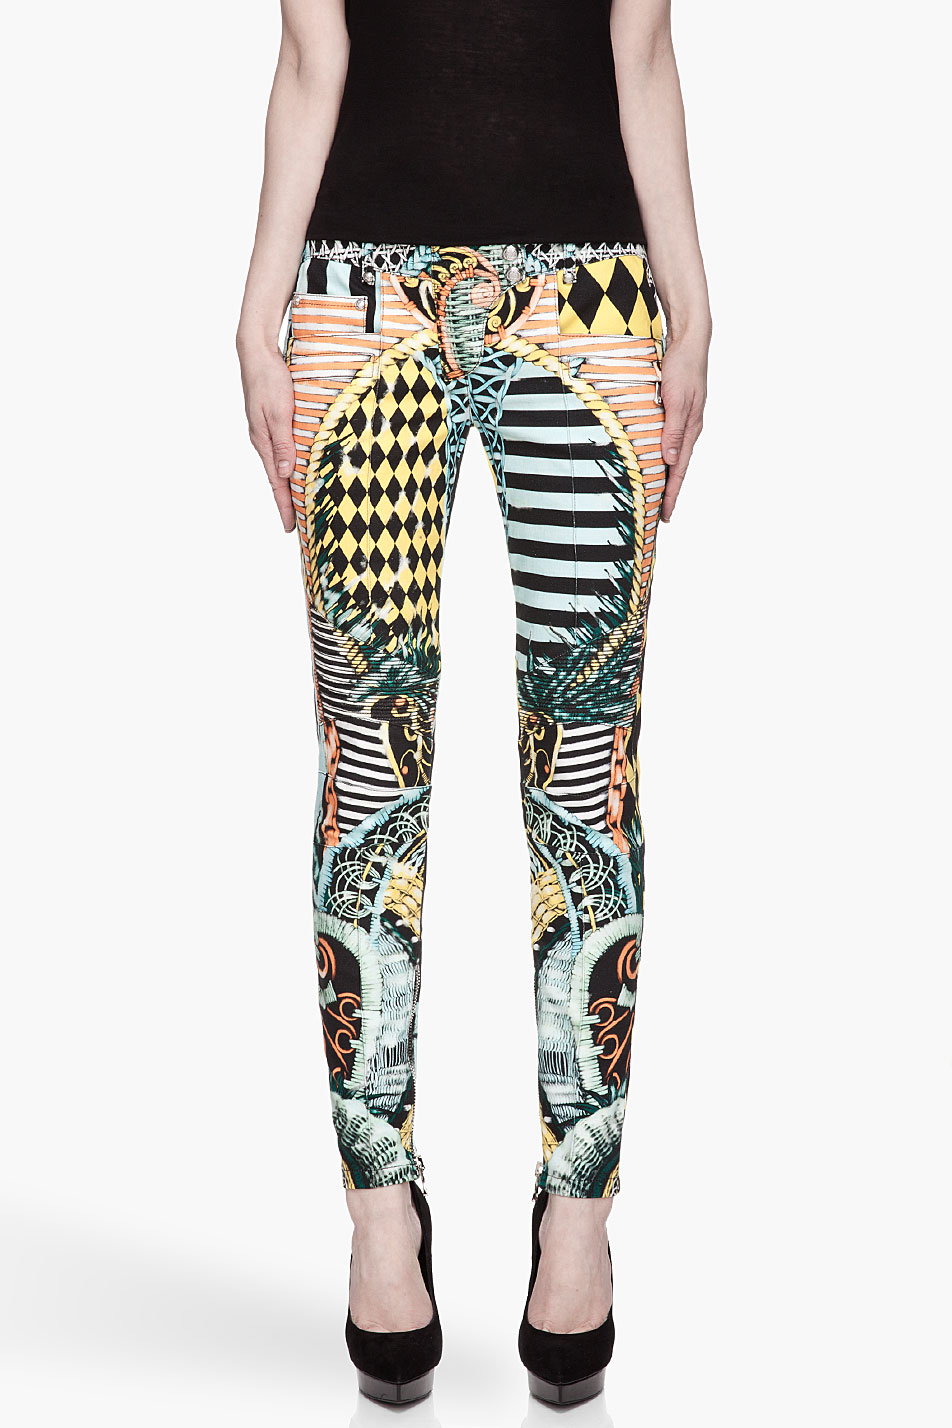 balmain turquoise multicolor patterned biker jeans